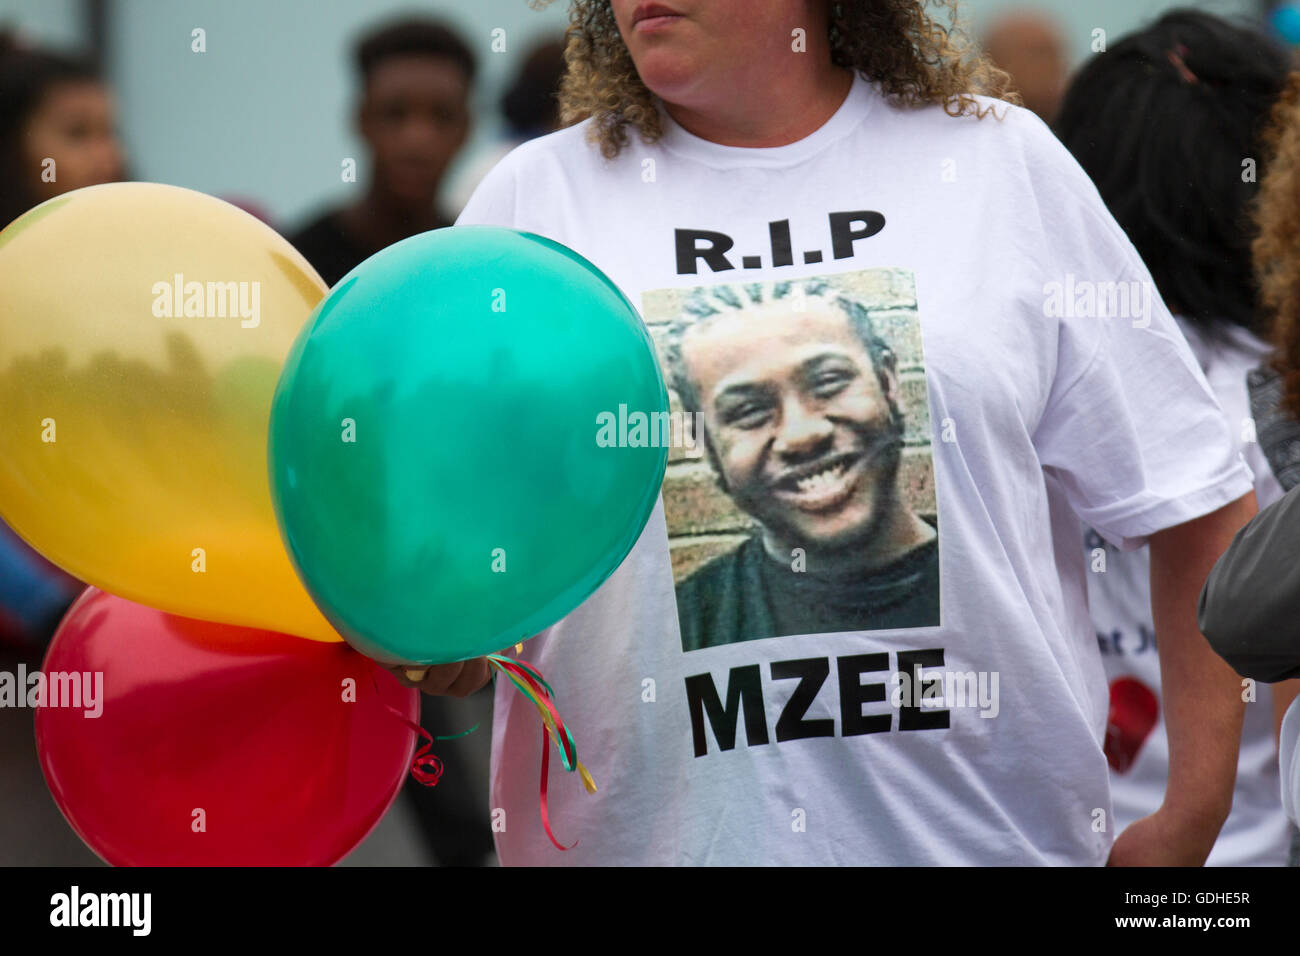 Liverpool, Merseyside, UK. 16th July, 2016. Mzee Mohammed Protest. Family and mourners protest through the streets - Stock Image